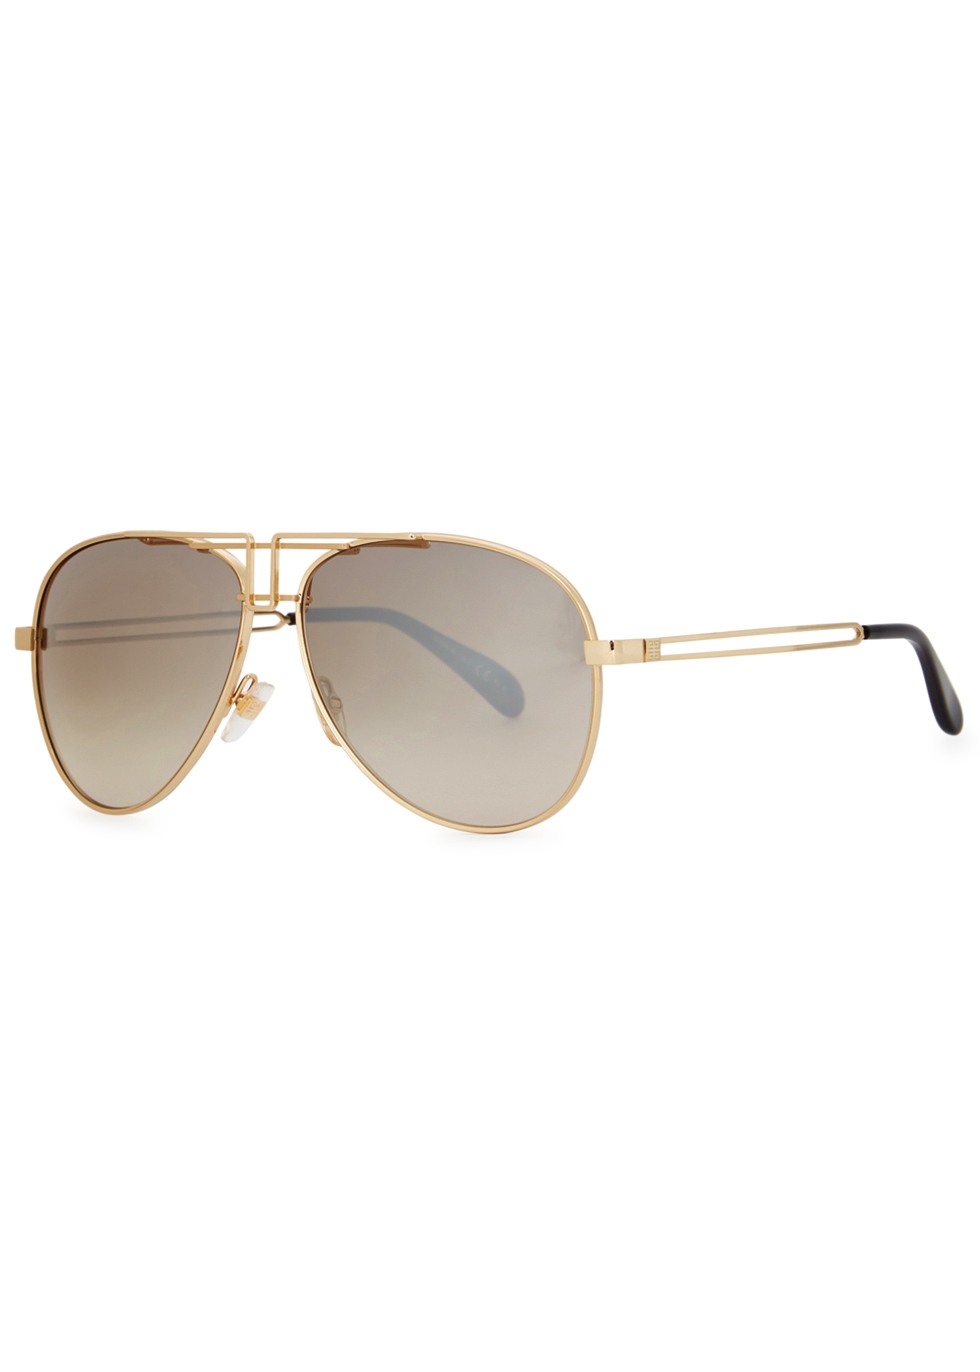 Gv 7110 Gold-Tone Aviator-Style Sunglasses